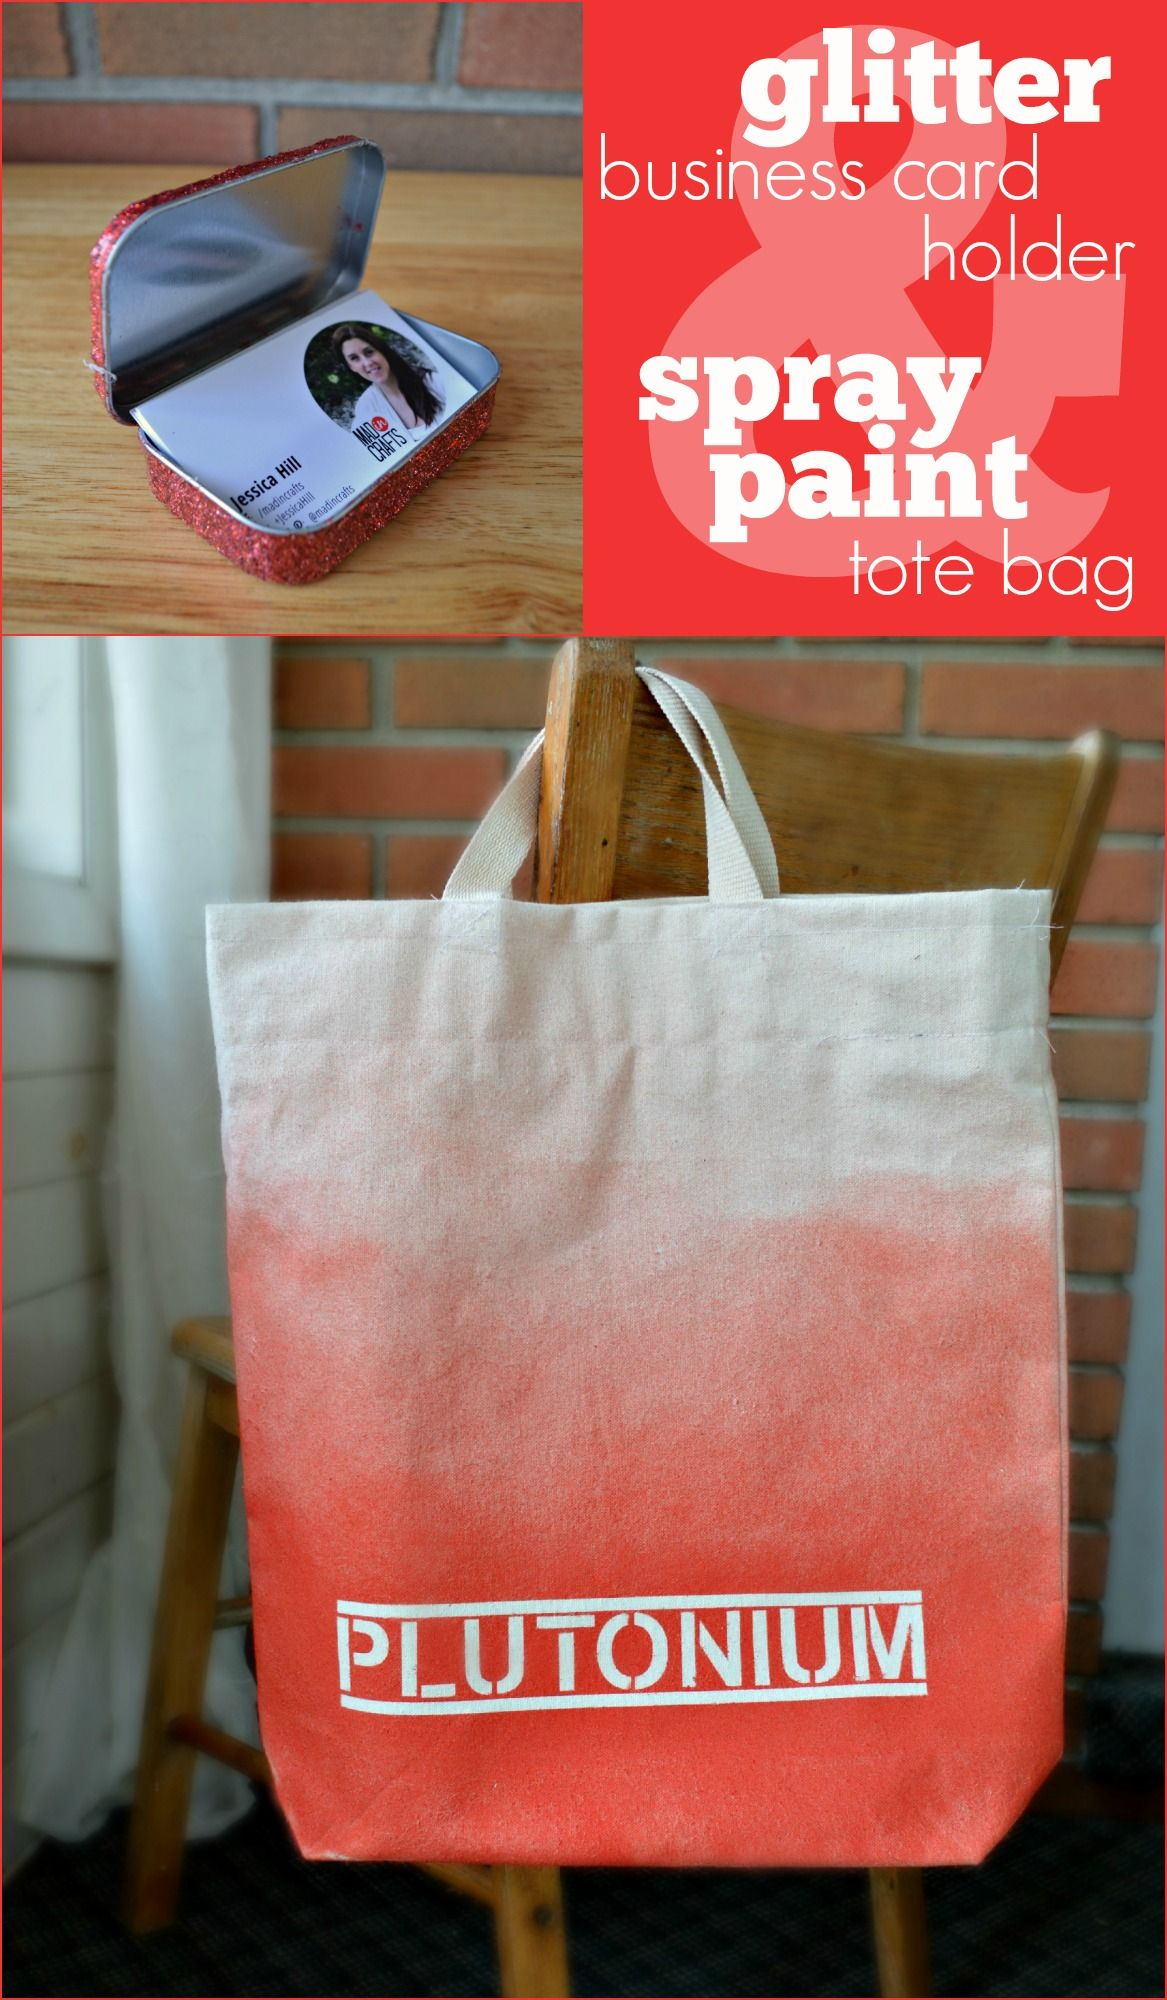 glitter business card holder and plutonium™ paint tote bag by mad